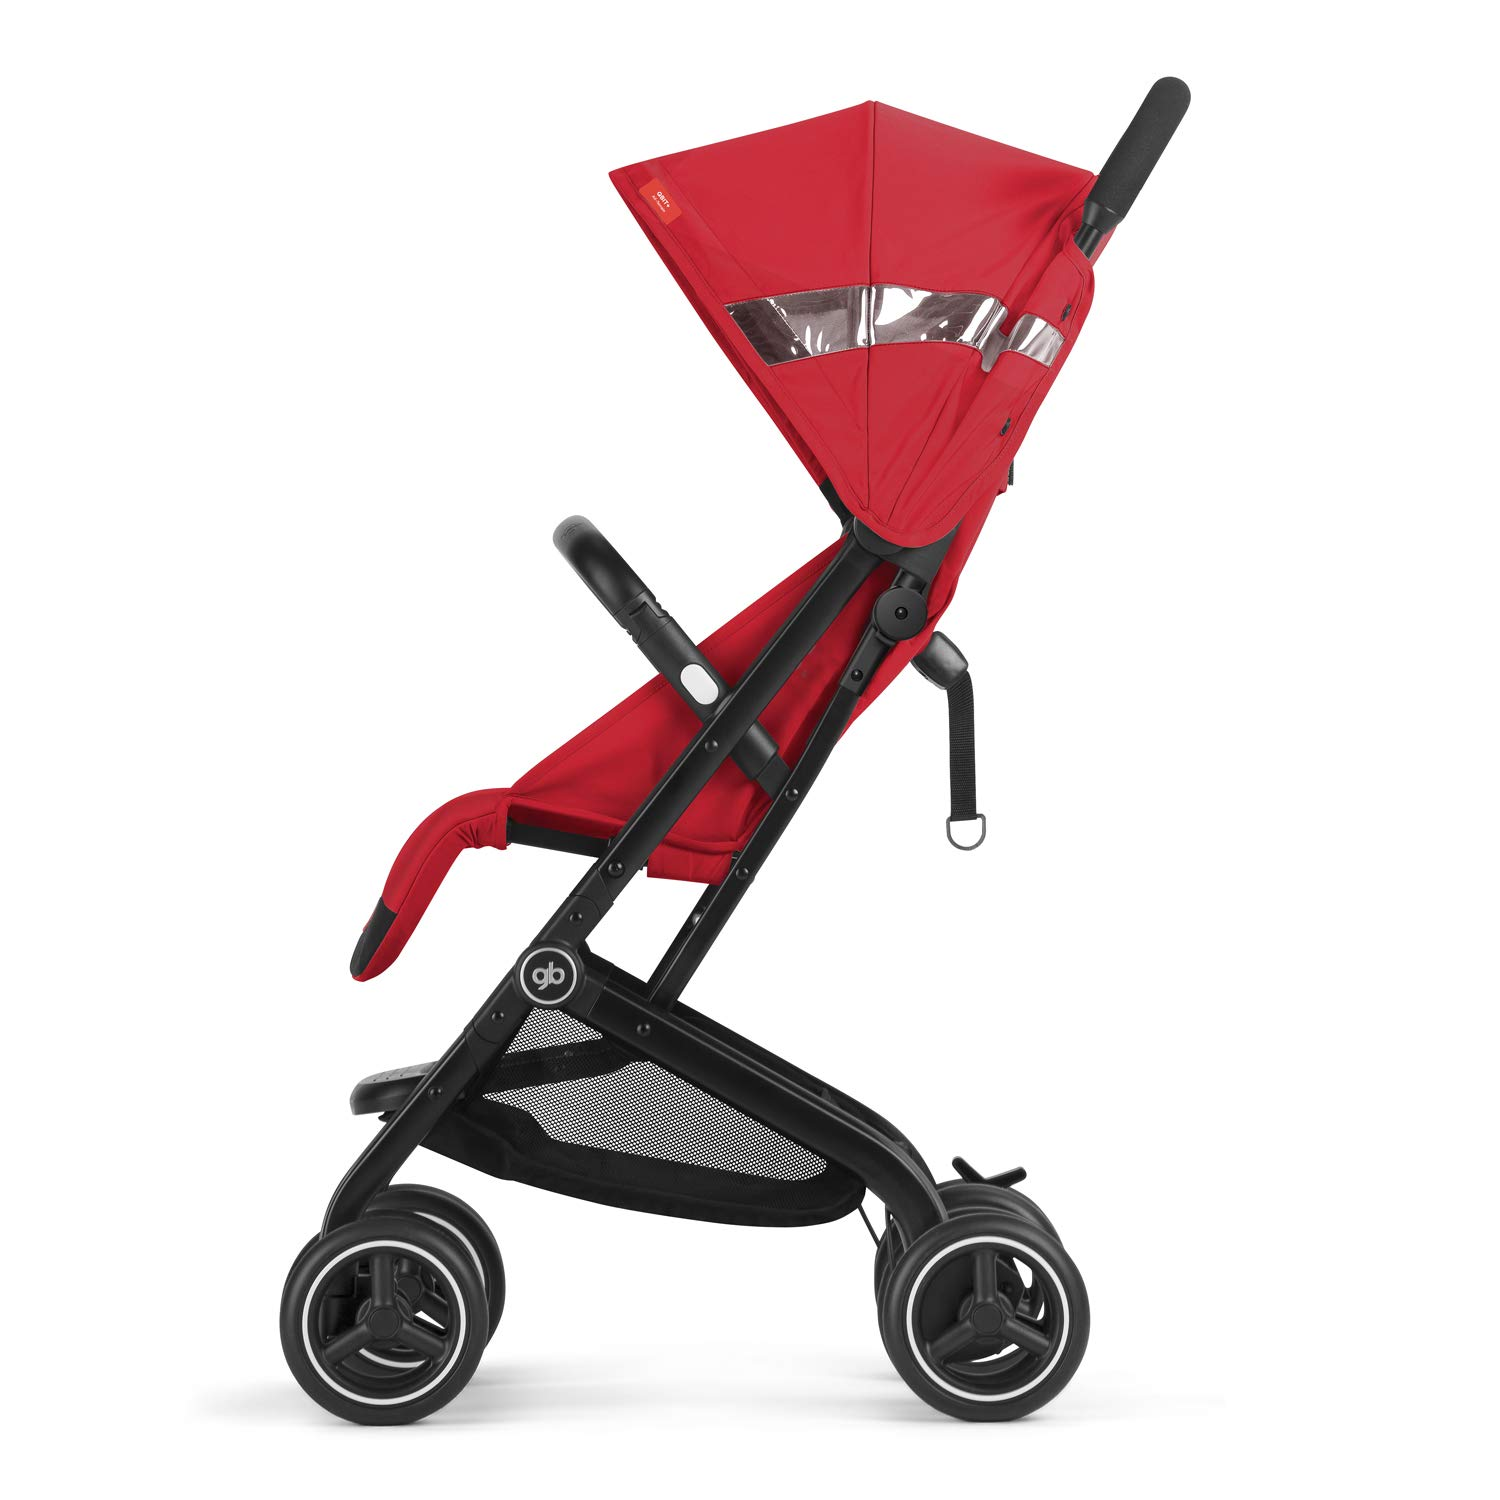 gb 2019 Buggy QBIT+ All-Terrain with Bumper Bar''Night Blue''- from Birth up to 17 kg (Approx. 4 Years) - GoodBaby QBIT Plus by gb (Image #3)